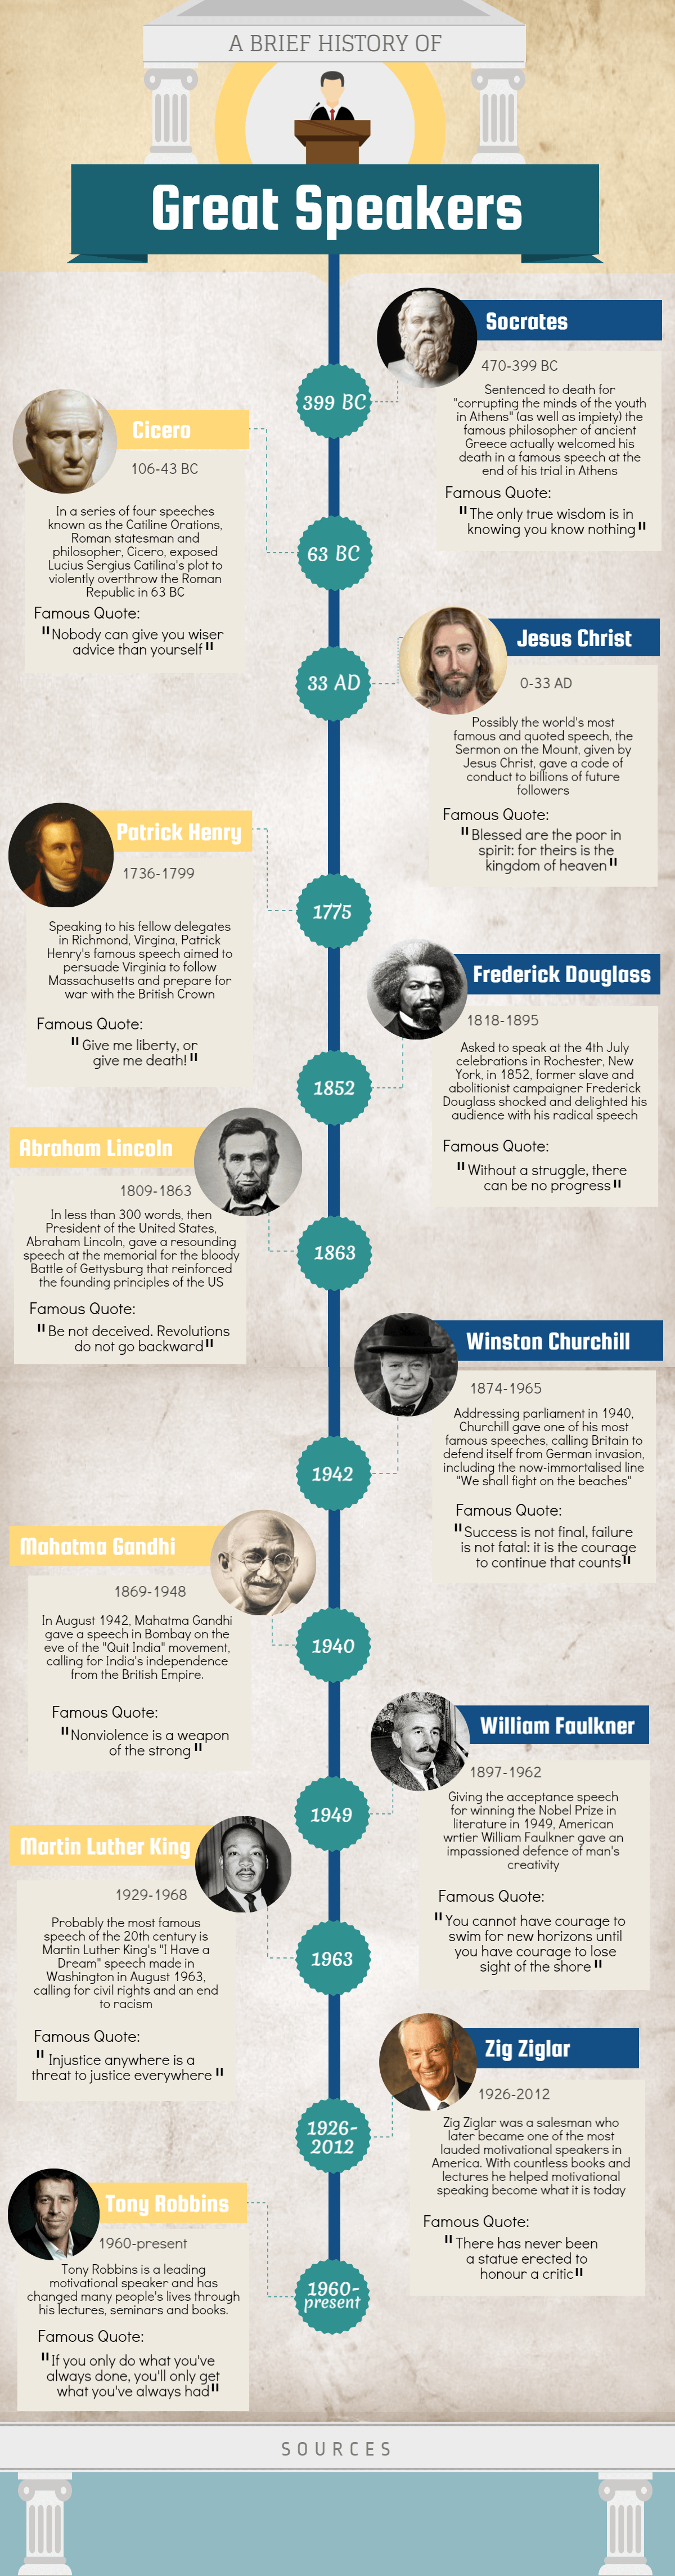 A Brief History of Great Speakers Infographic